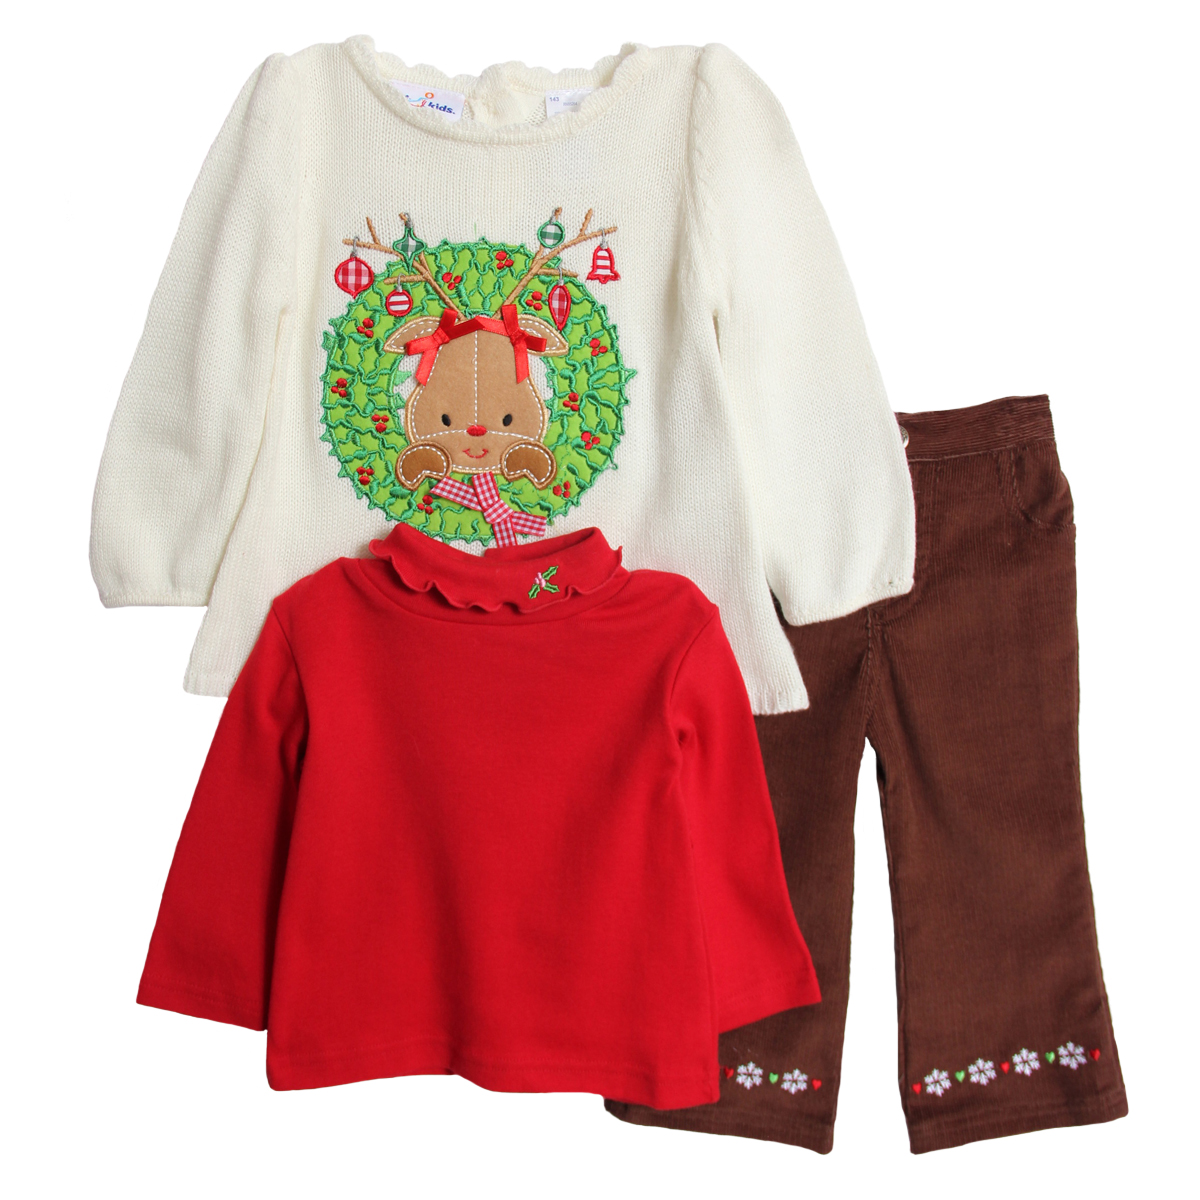 B.T. Kids Newborn Baby Girls 3 Piece Christmas Sweater Turtleneck Corduroy Pants at Sears.com